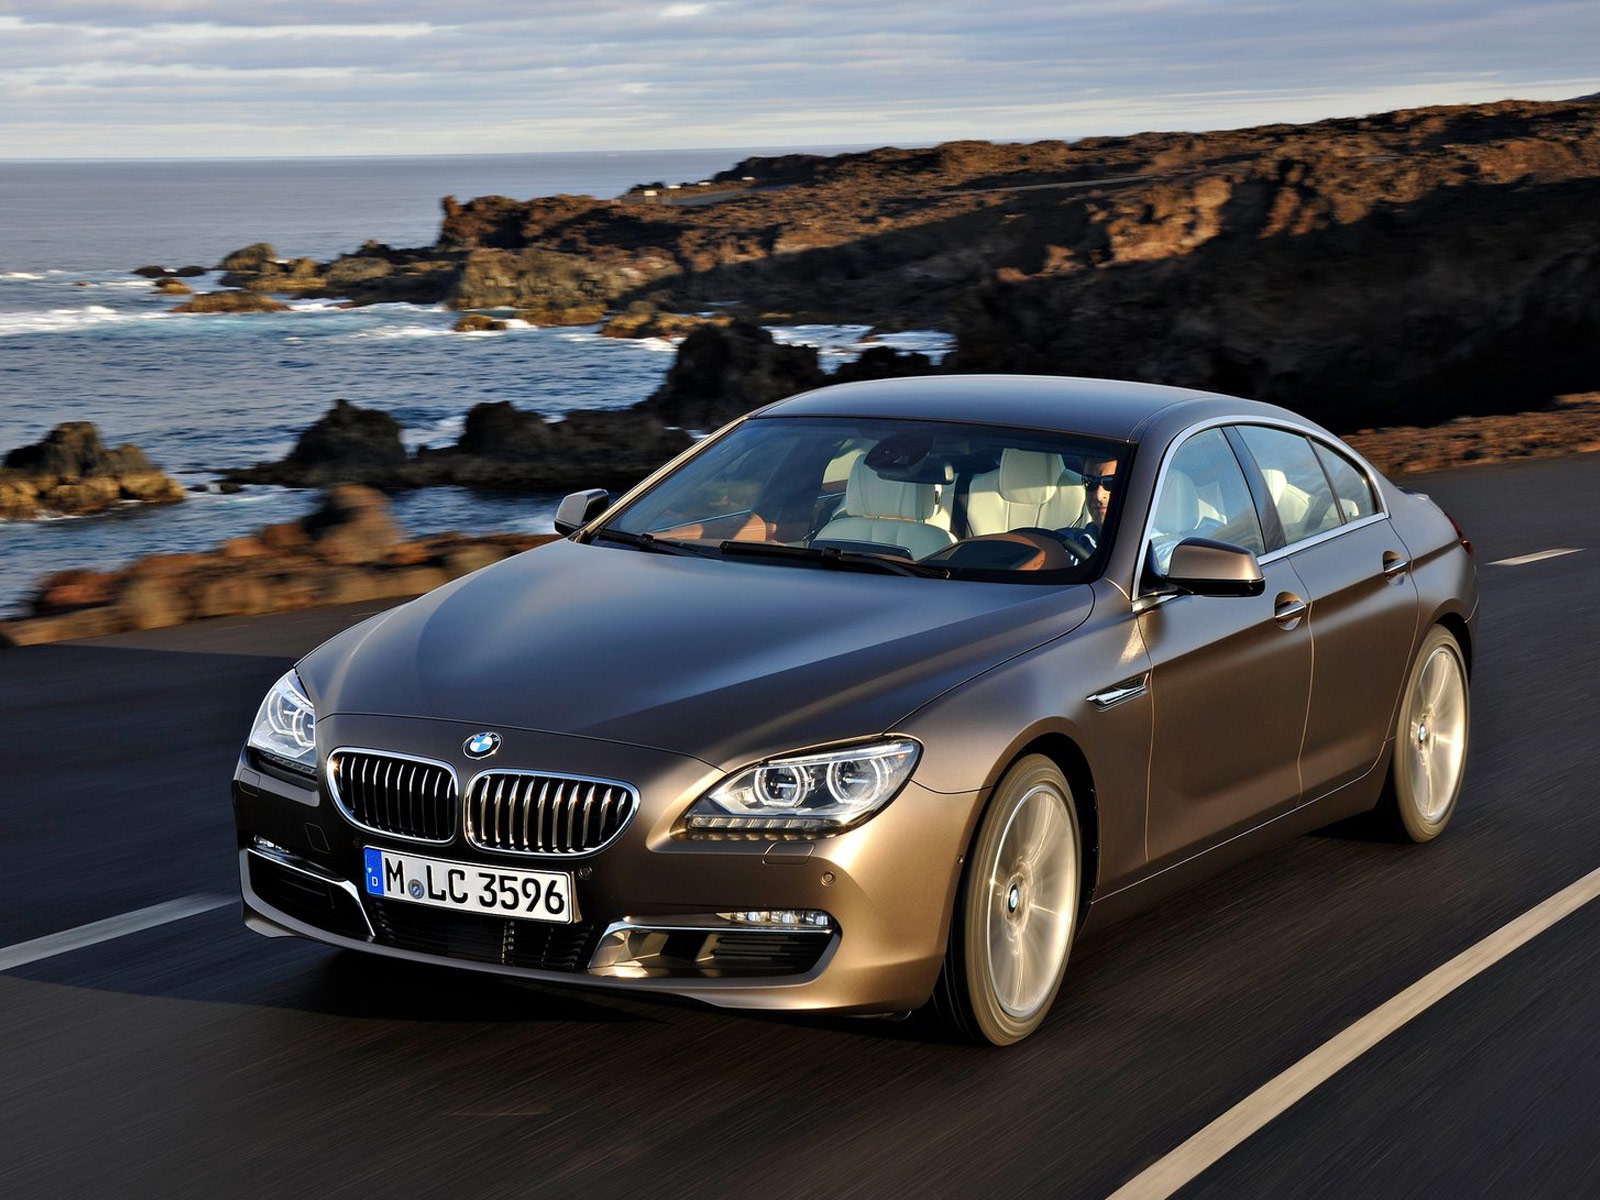 bmw 6 series gran coupe uk version 2013 car barn sport. Black Bedroom Furniture Sets. Home Design Ideas